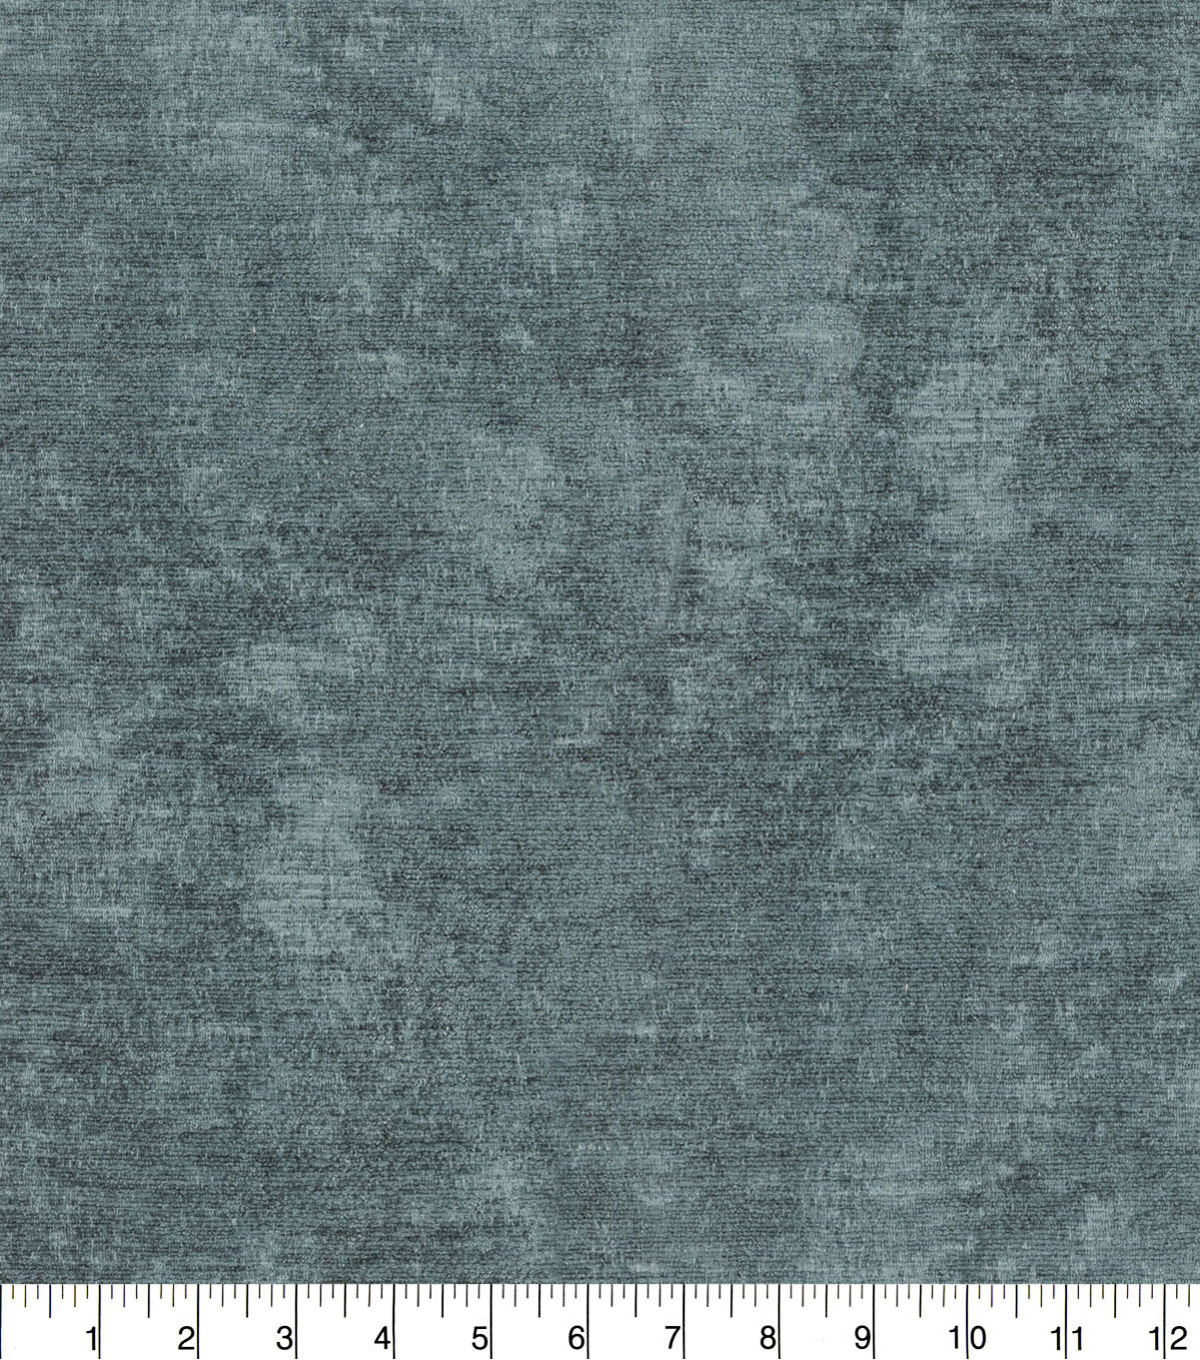 PKL Studio Upholstery Décor Fabric 9\u0022x9\u0022 Swatch-Highgarden Lagoon